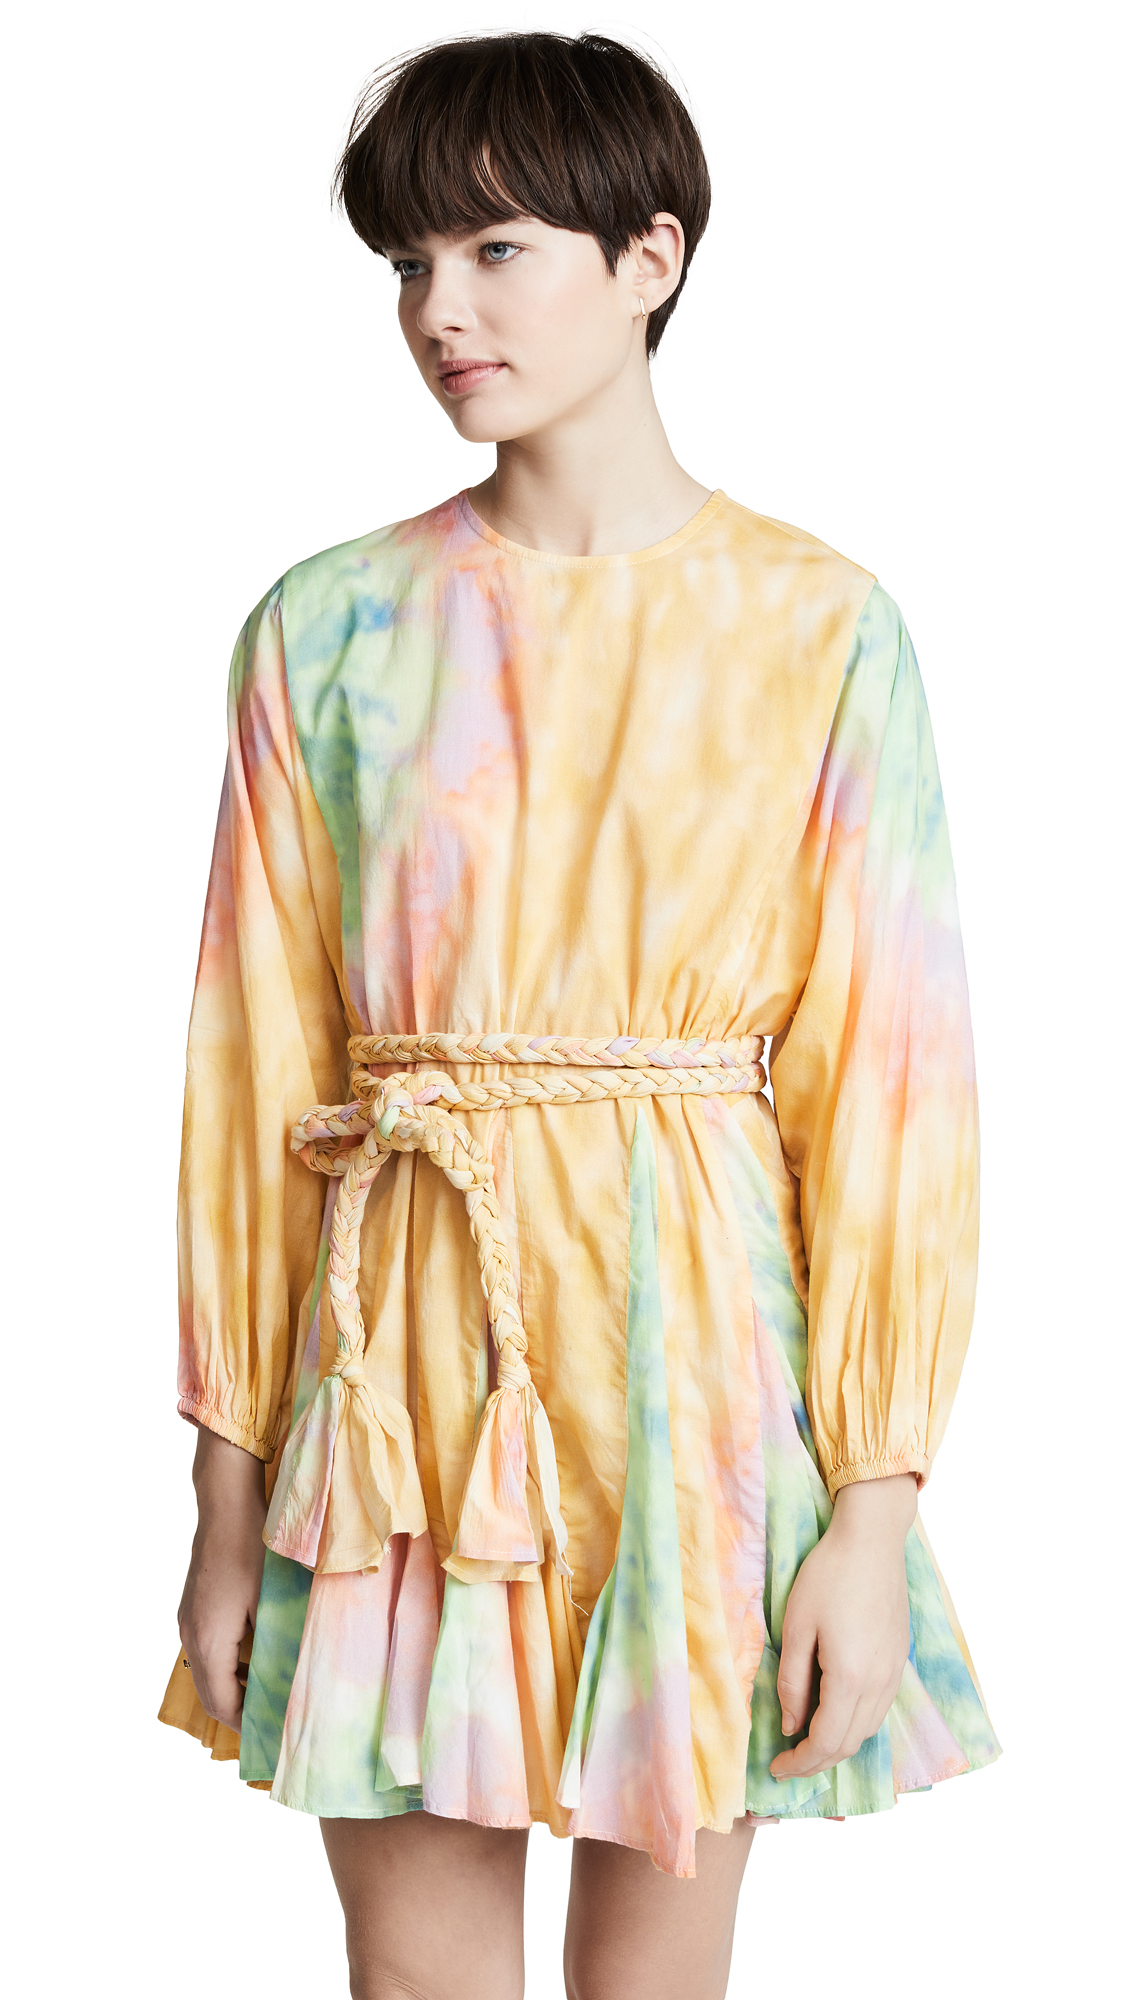 100b6d51e Rhode Resort Ella Belted Pleated Cotton Mini Dress In Tie Dye